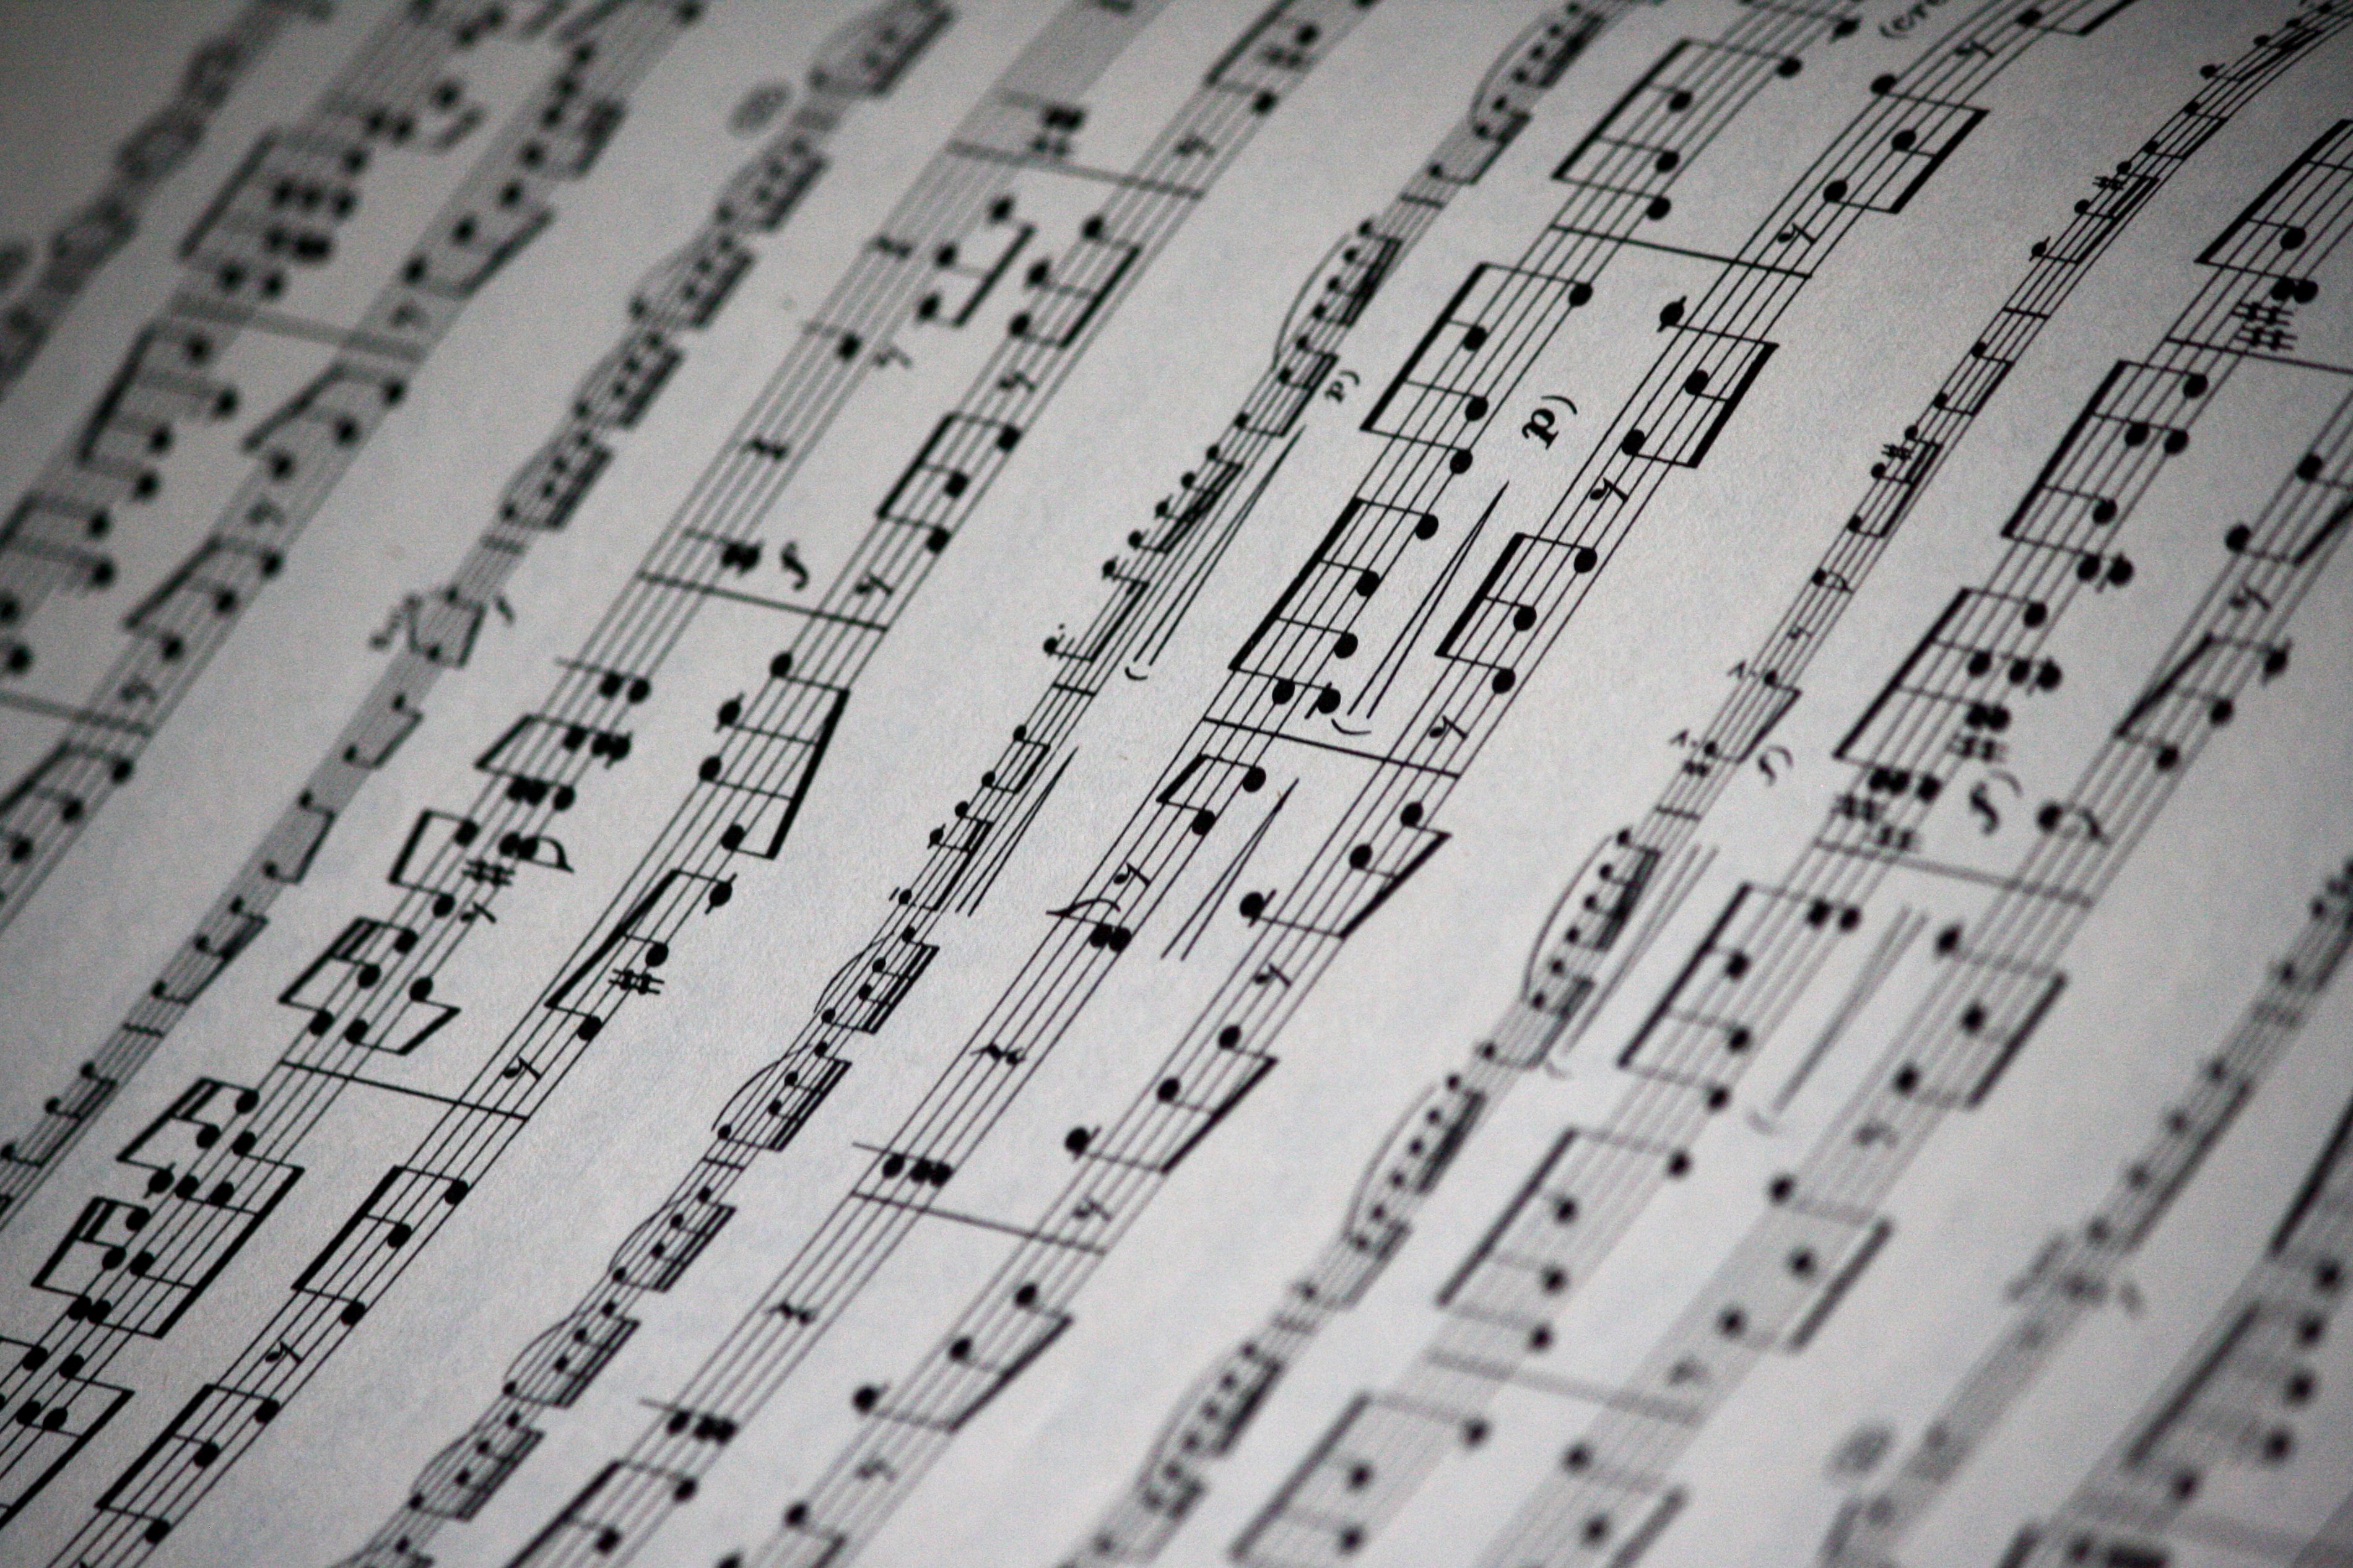 Sheet Music Texture Picture | Free Photograph | Photos